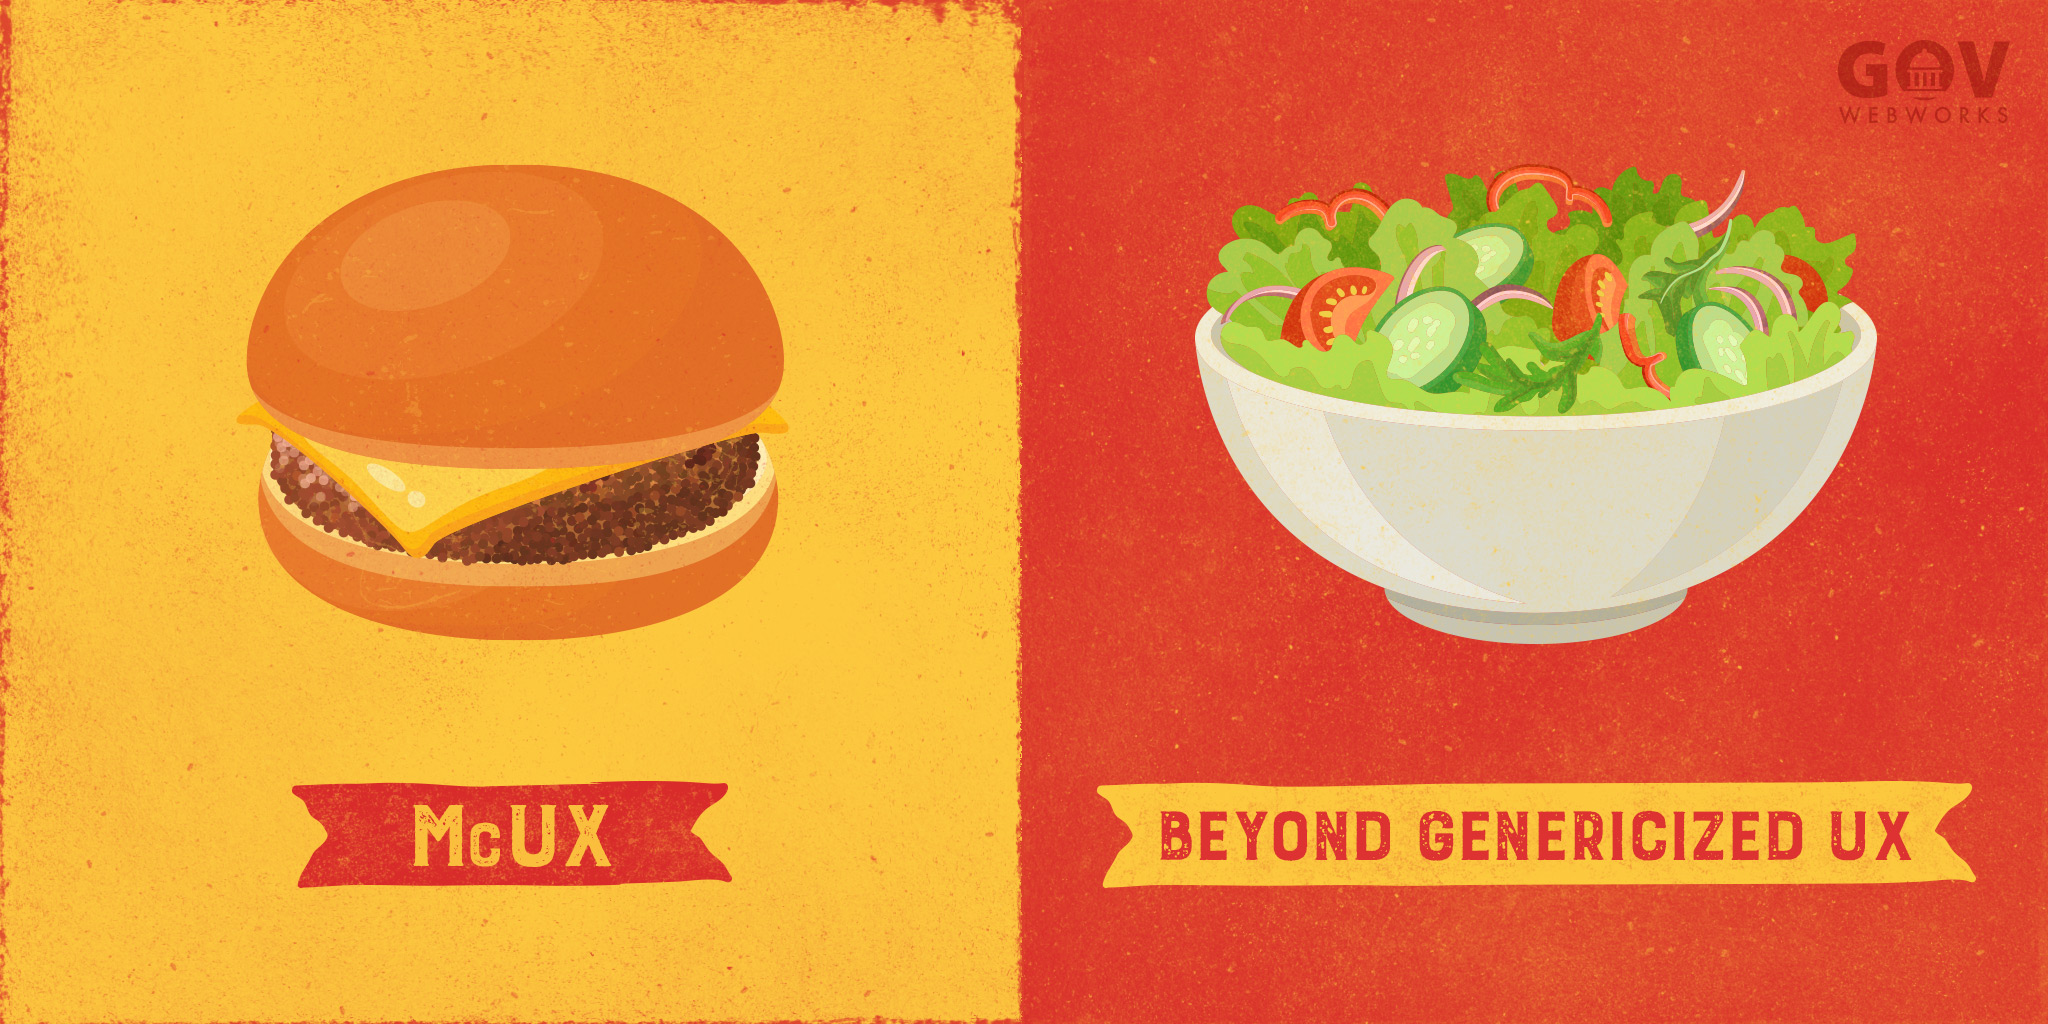 McUX vs Beyond Genericized UX